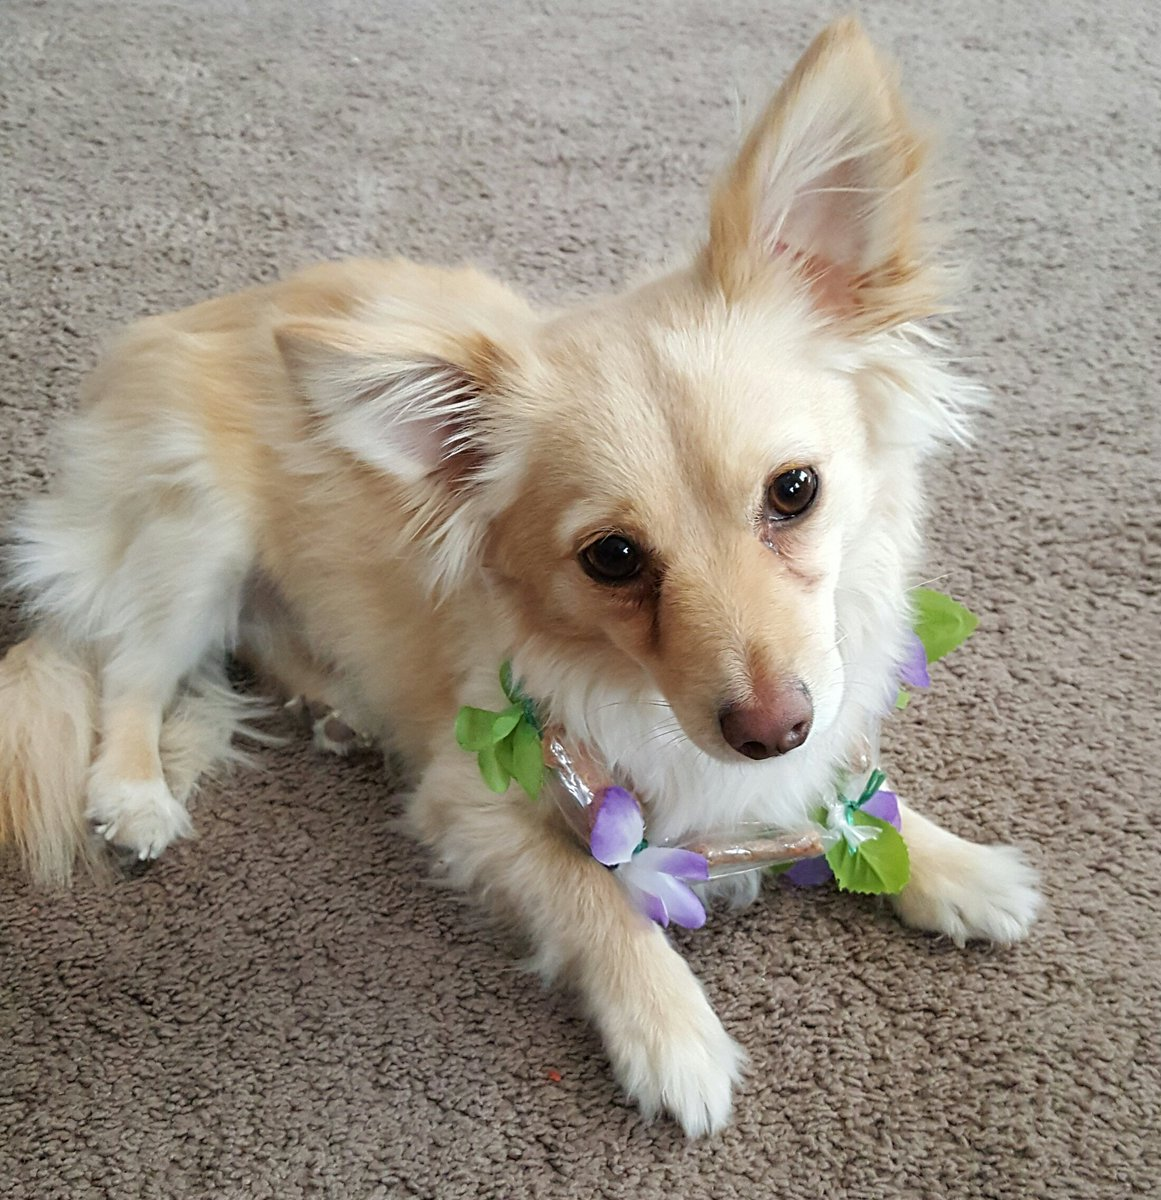 Meri Brown On Twitter I Got Mosby His Own Dog Treat Lei From Hawaii Yep I M That Person Mariahlian Https T Co X7tvaa3lk7 People ask me all the time why i. meri brown on twitter i got mosby his